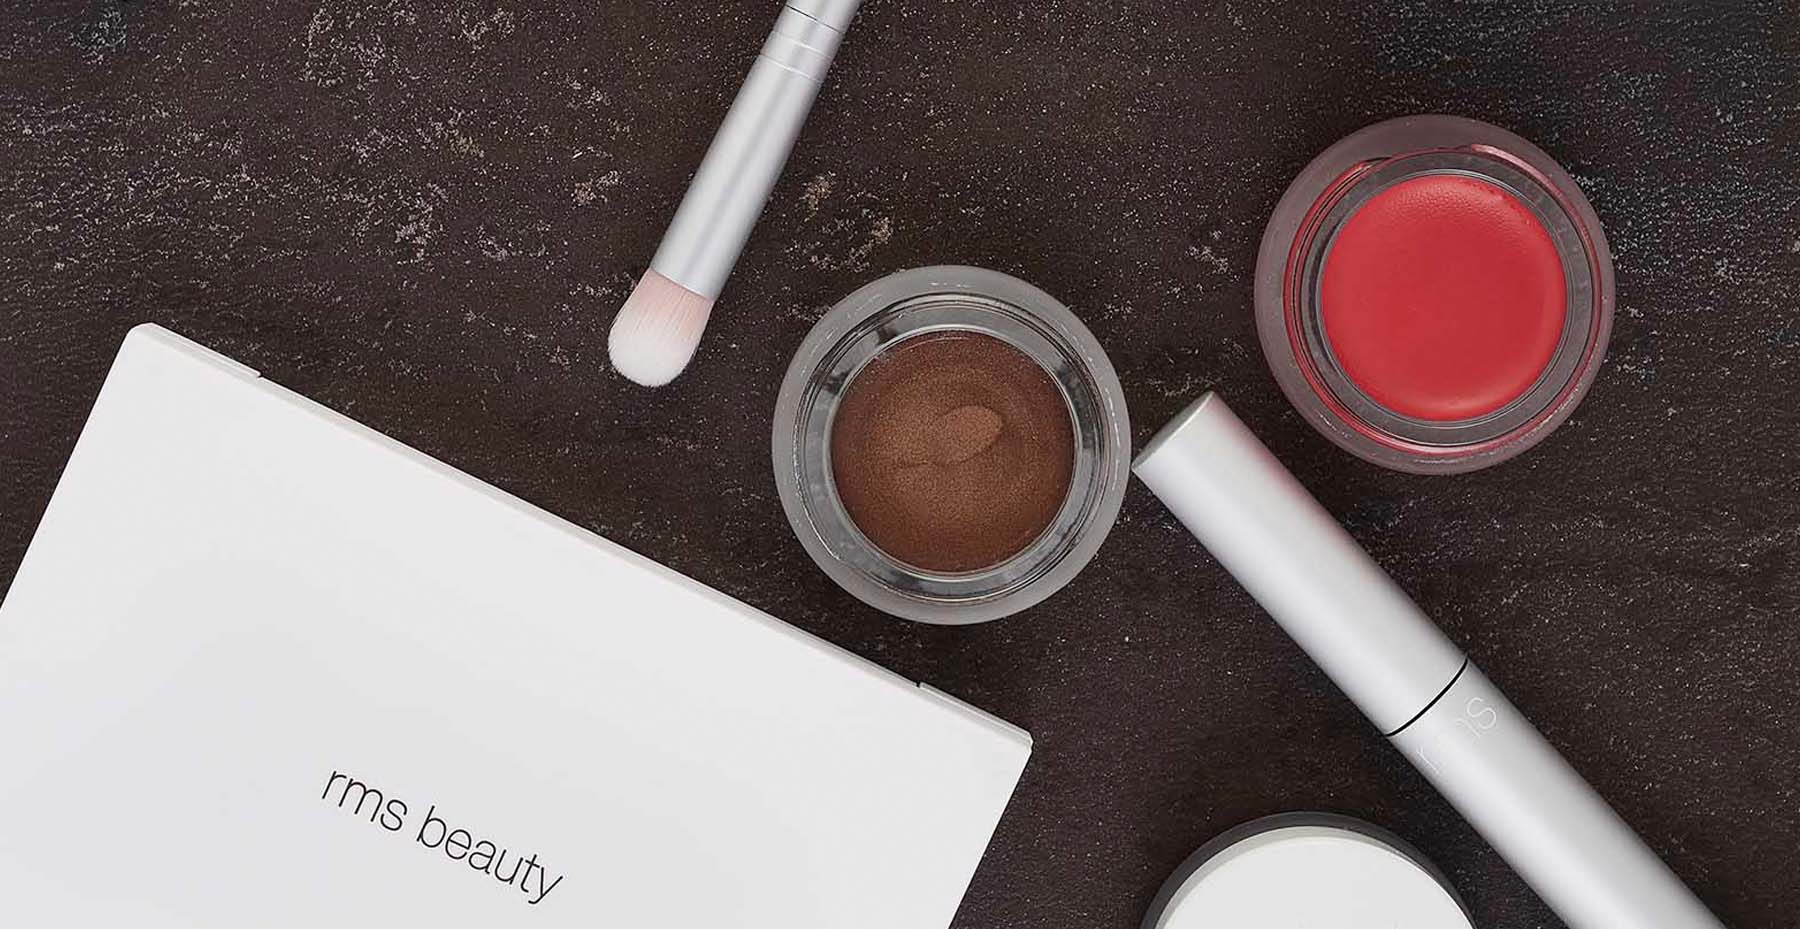 RMS Make-up products